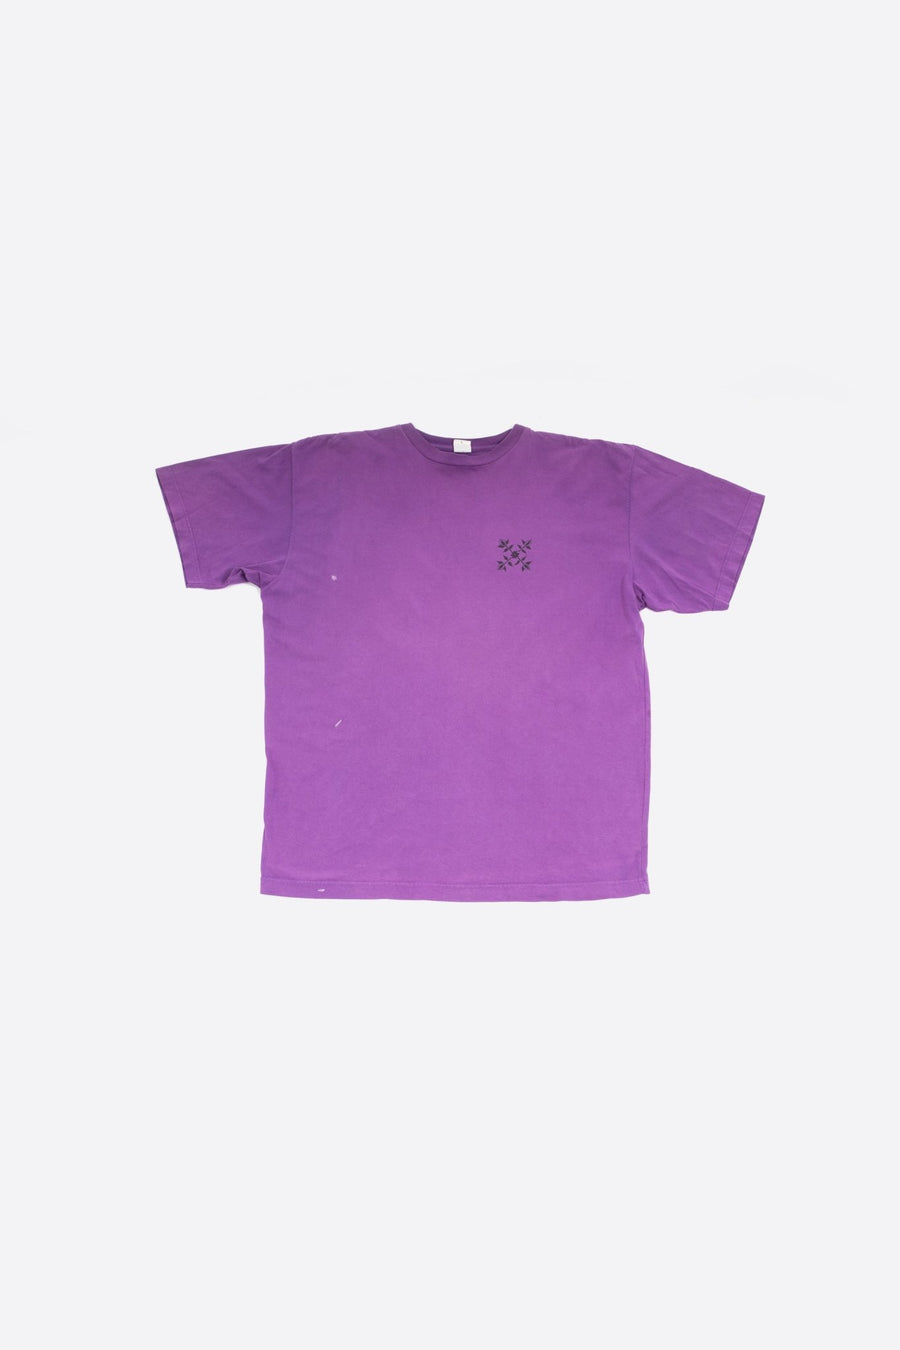 T-shirt Oxbow Flower Violet - WASTED PARIS